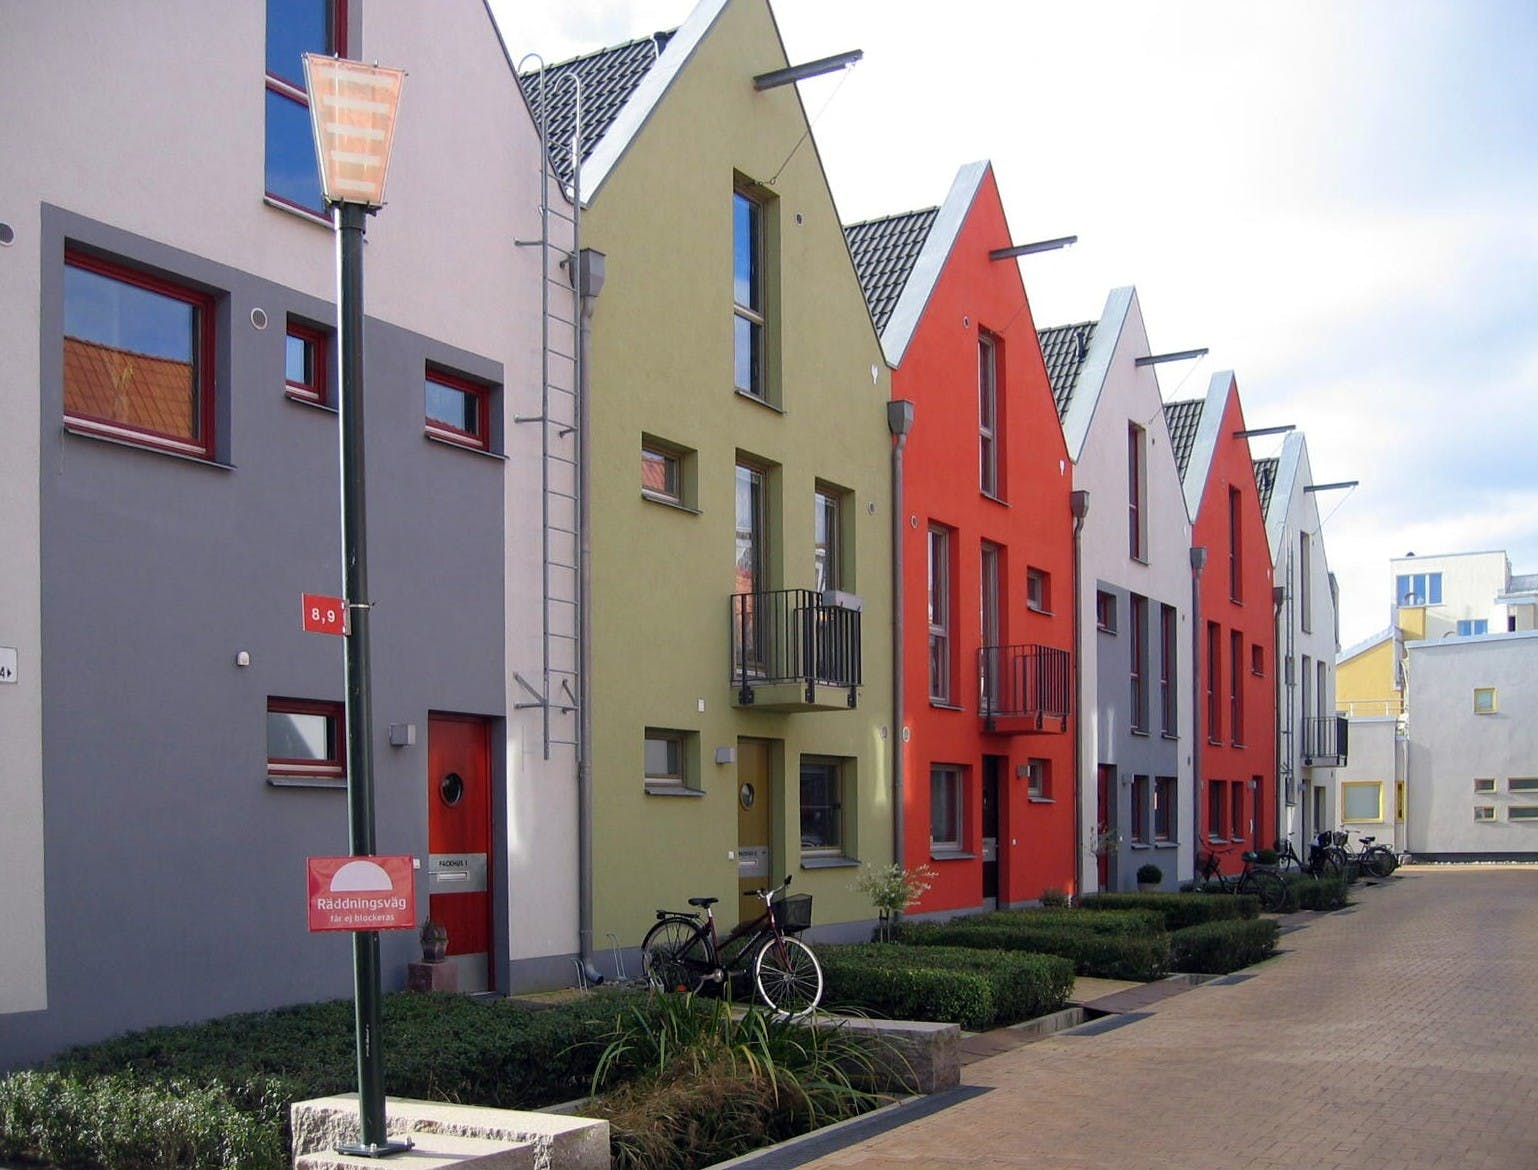 Creativity in Design - Townhouses - example 1